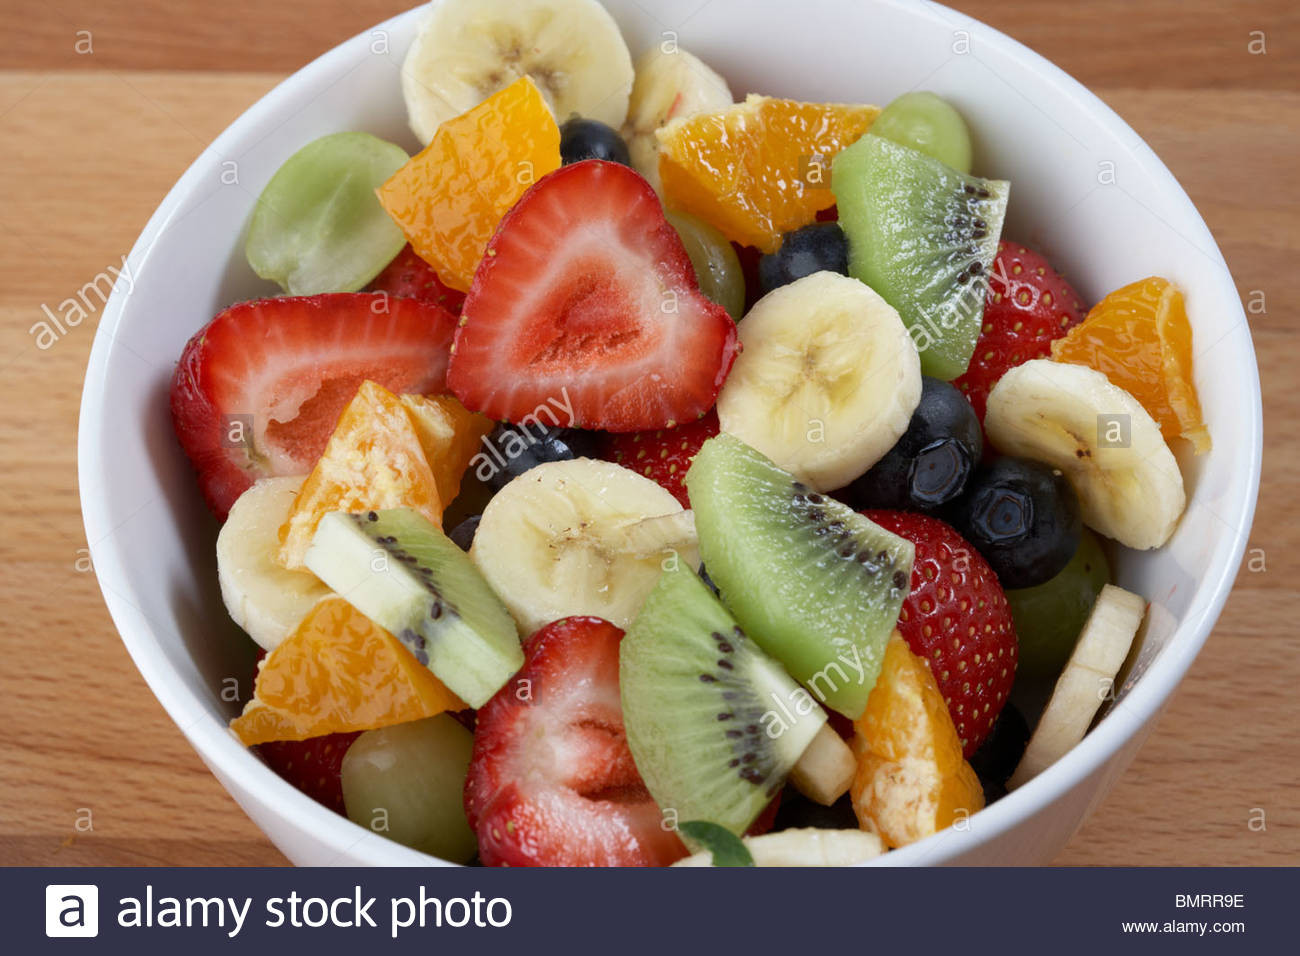 Healthy Fruit Breakfast  bowl of mixed fruit salad for a healthy breakfast Stock